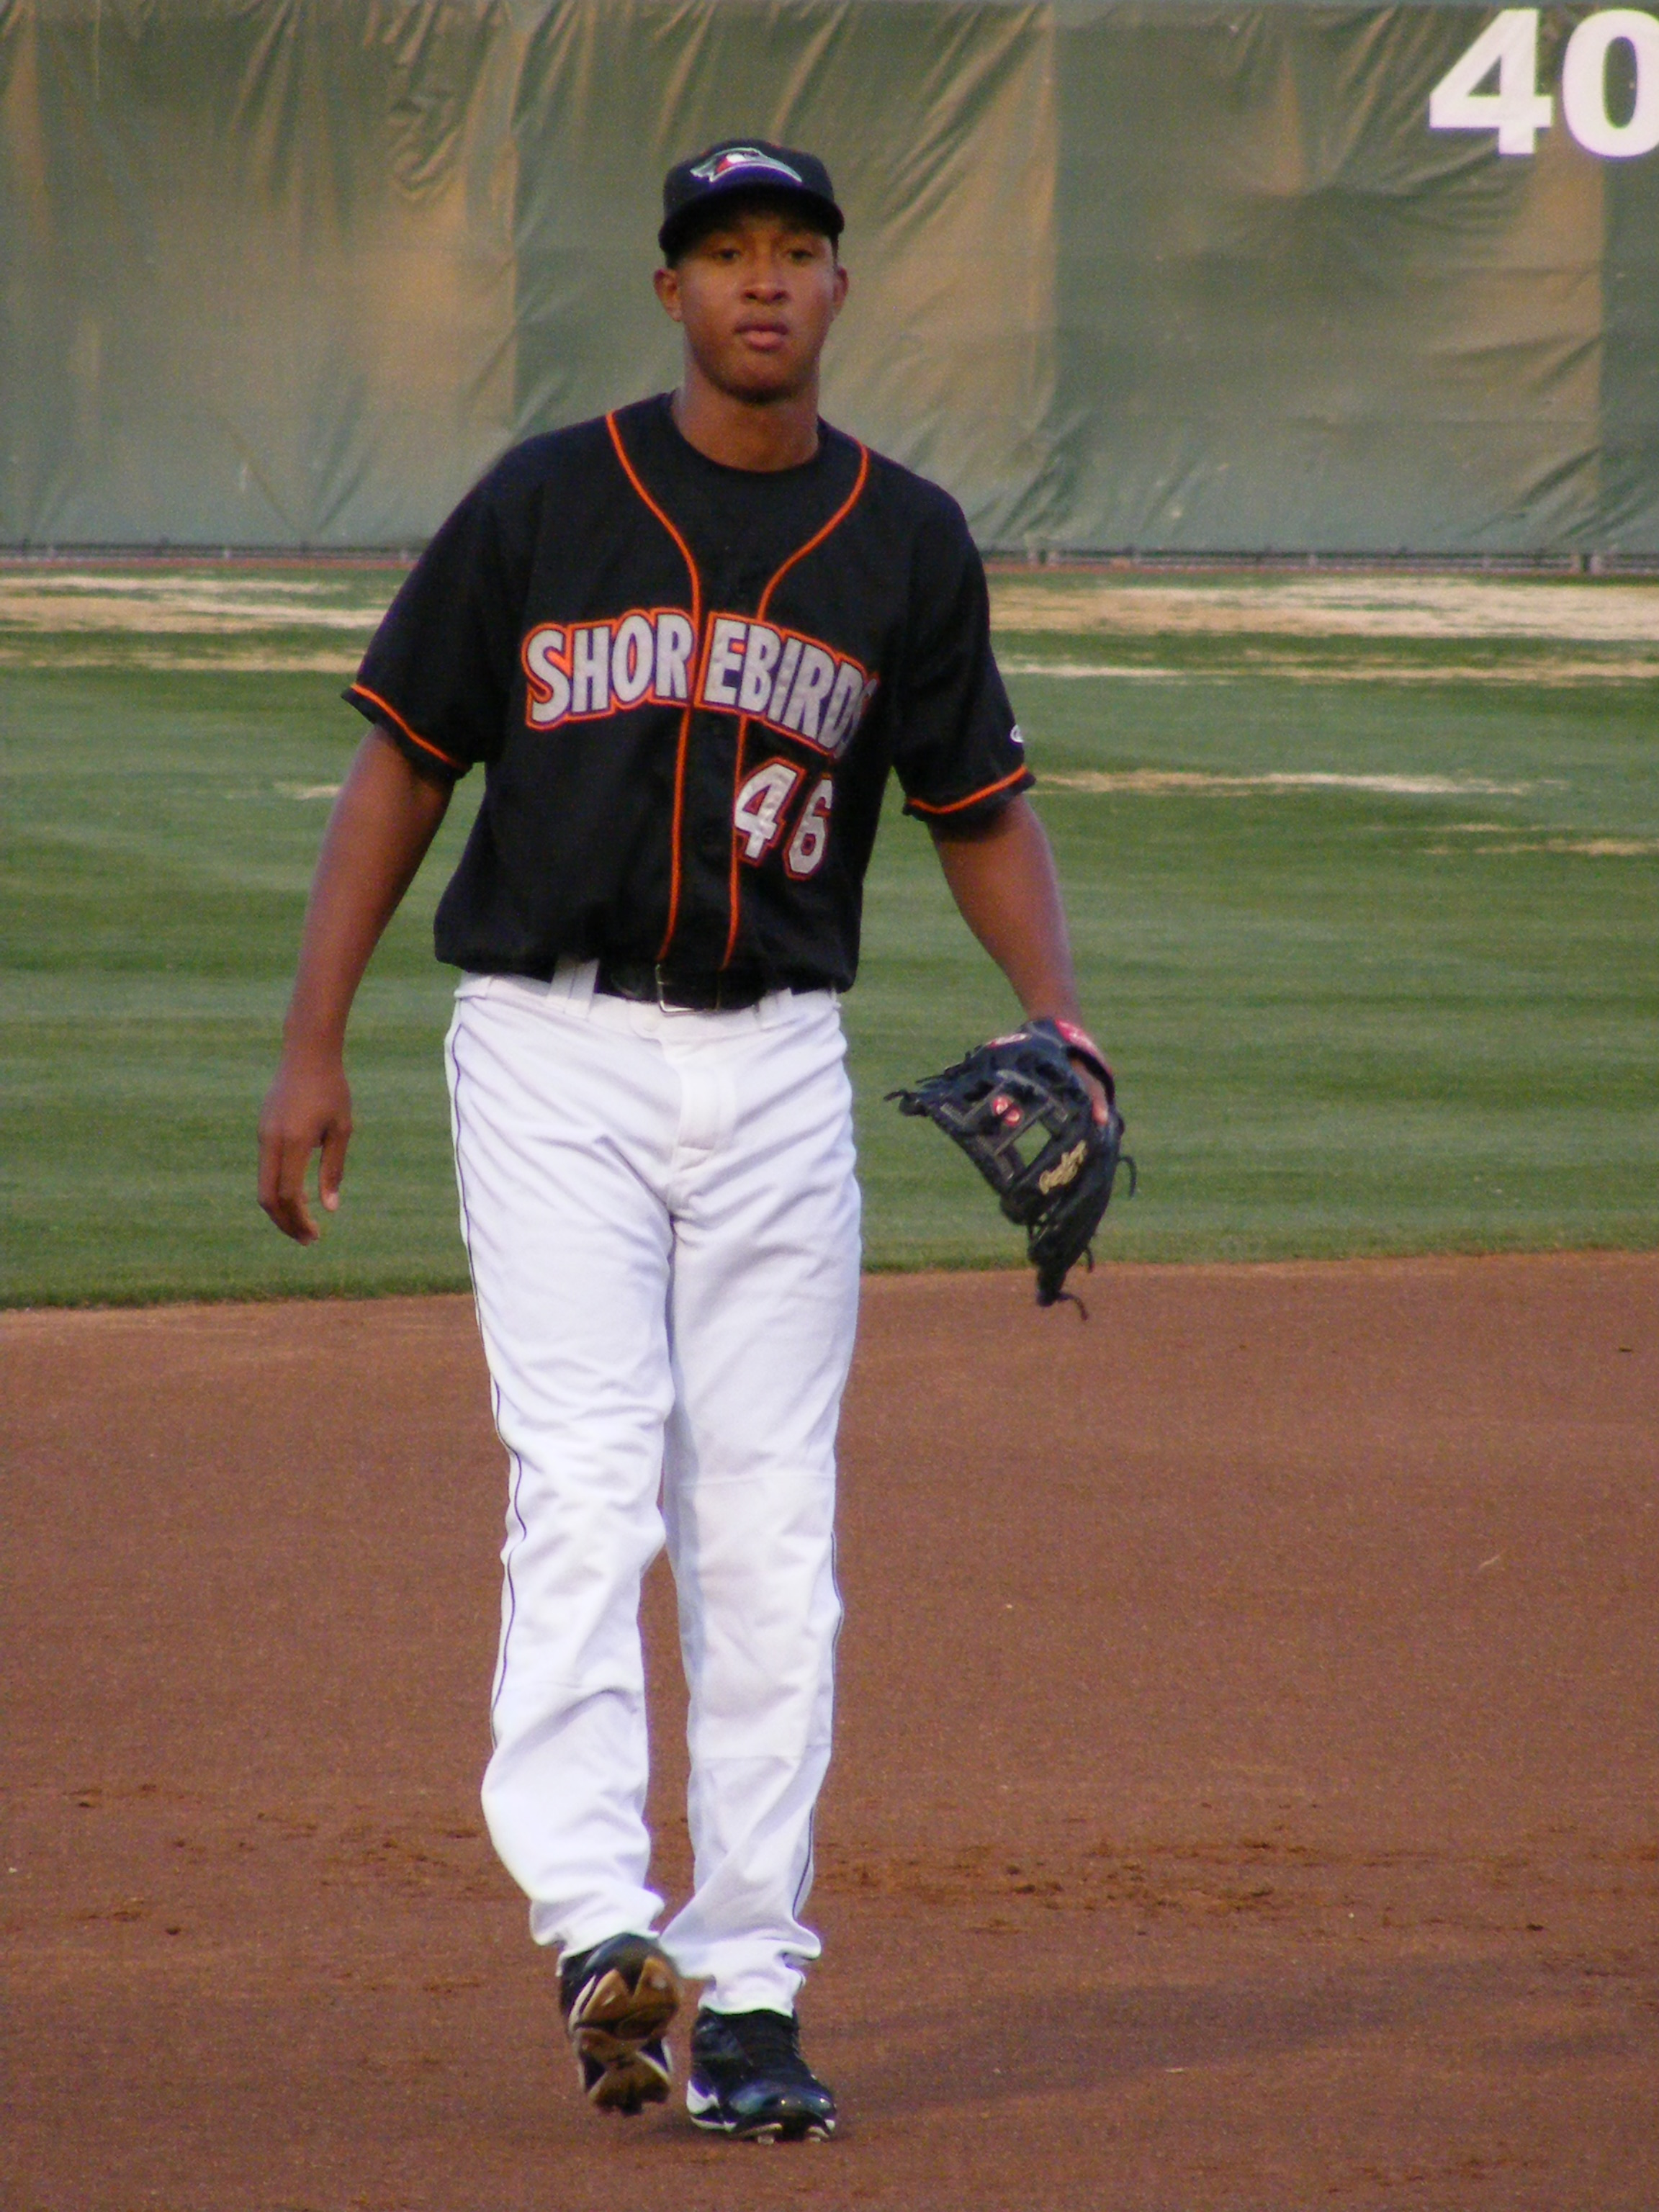 So far Schoop has been holding down third base in Ryan Minor's lineup.